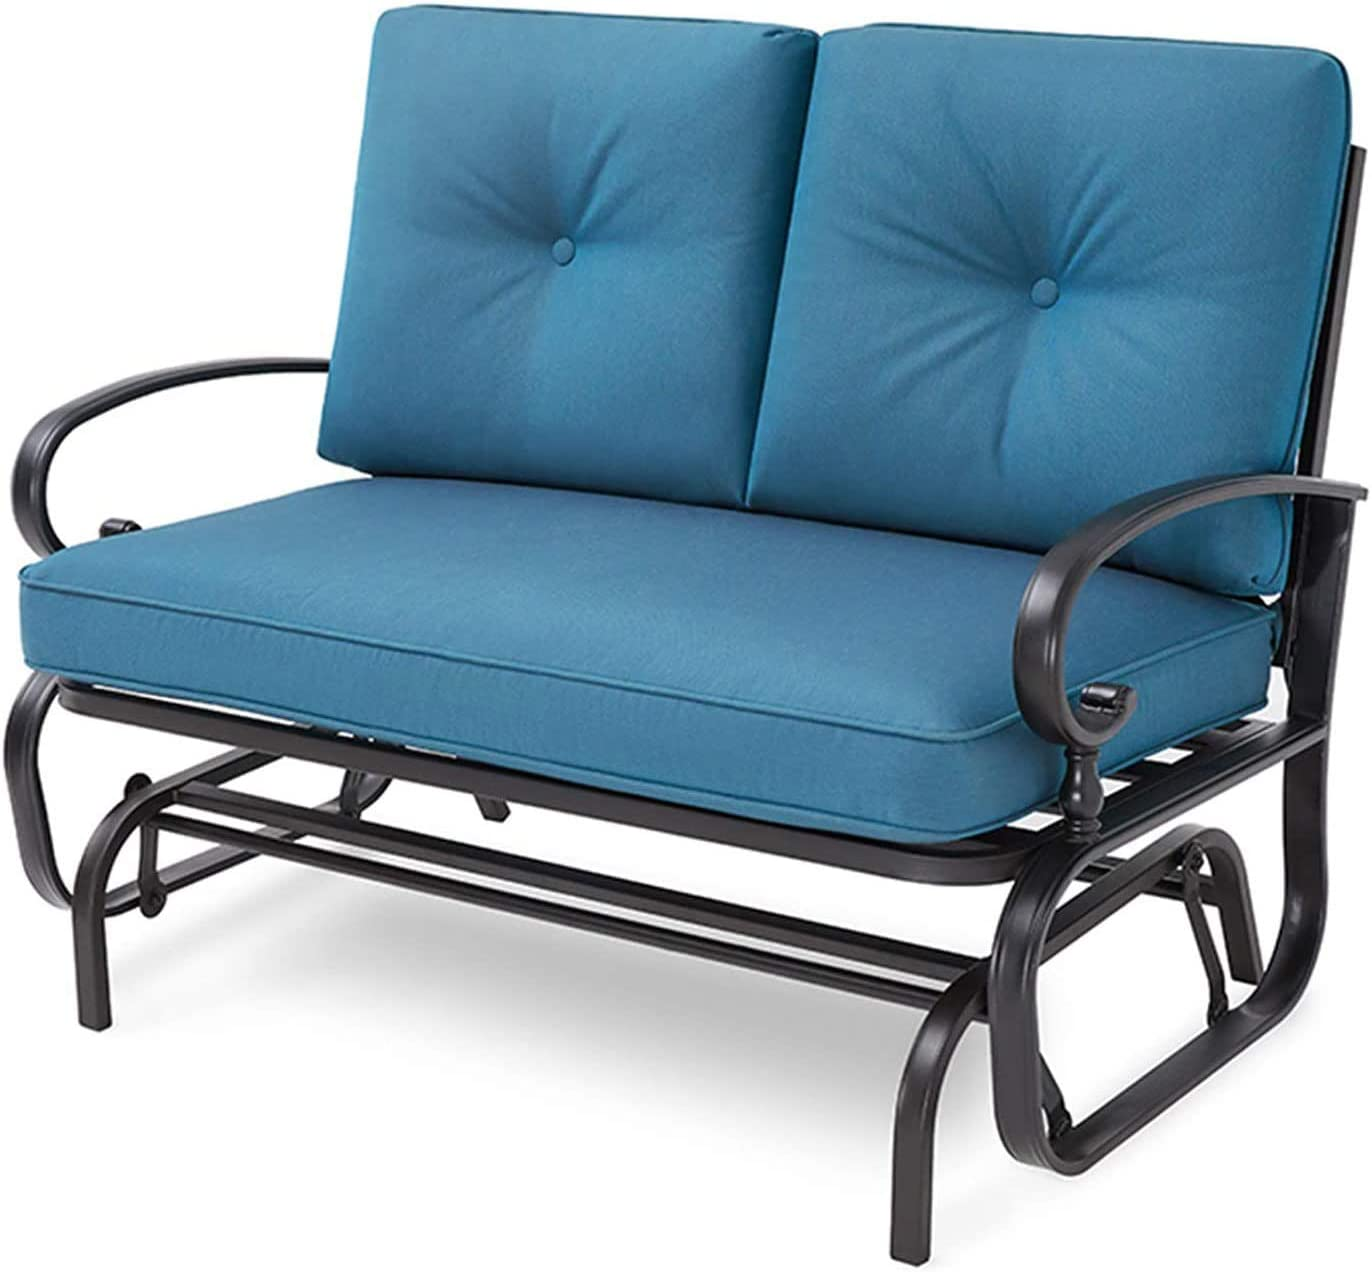 Crownland Outdoor Patio Glider Rocking Bench,Porch Furniture Glider Loveseat Seating,Wrought Iron Chair Set with Cushion, Peacock Blue